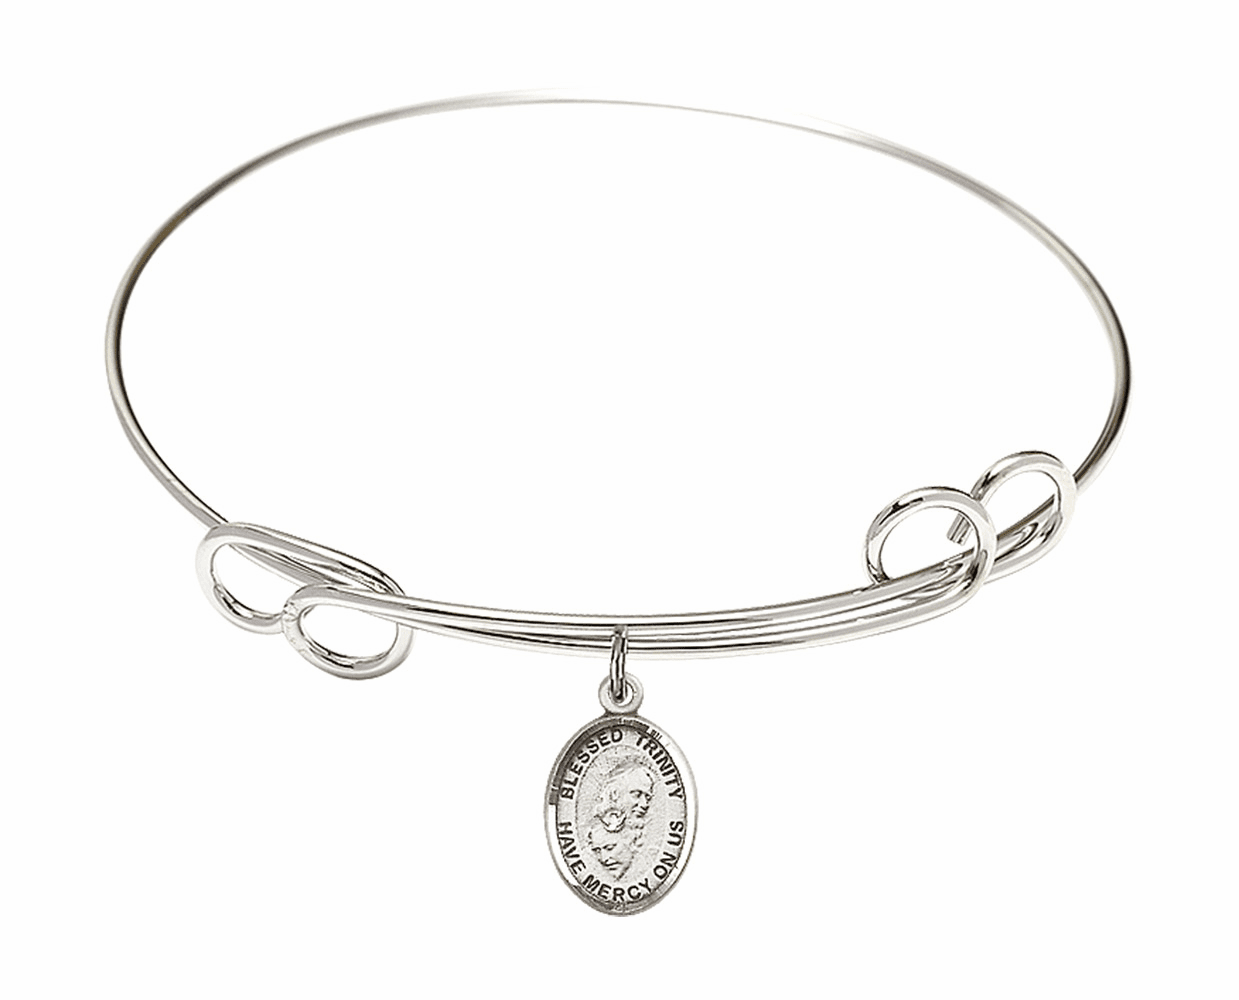 Round Loop Blessed Trinity Bangle Charm Bracelet by Bliss